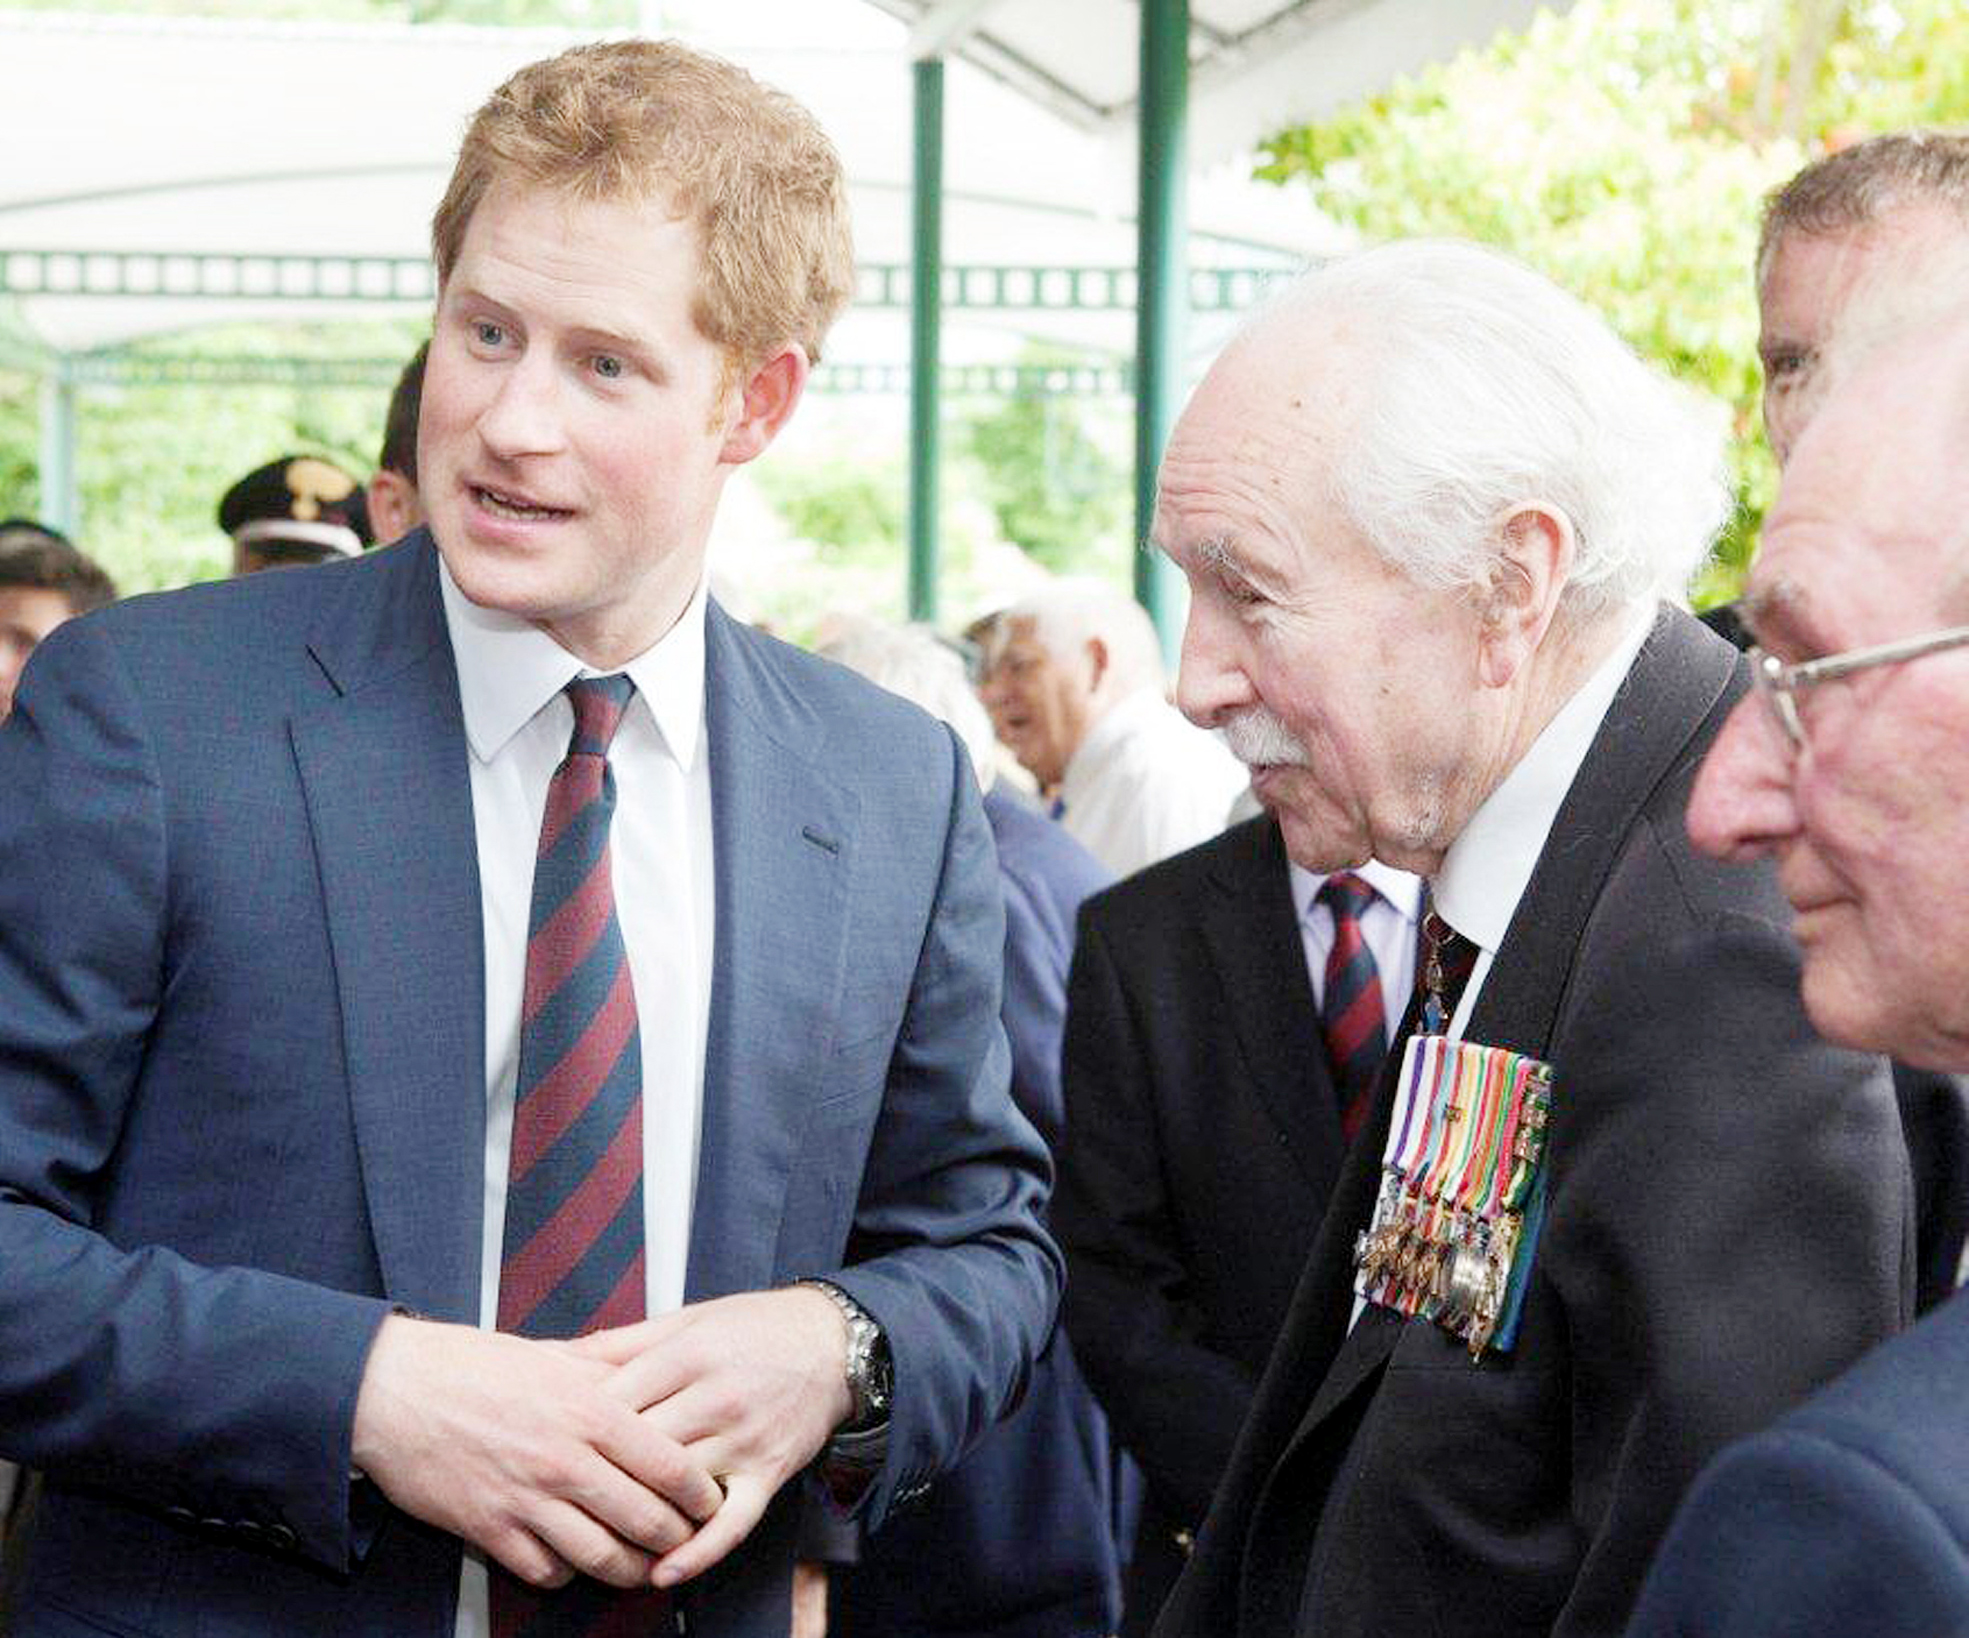 Bolton soldiers meet Prince Harry at World War Two remembrance service in Italy